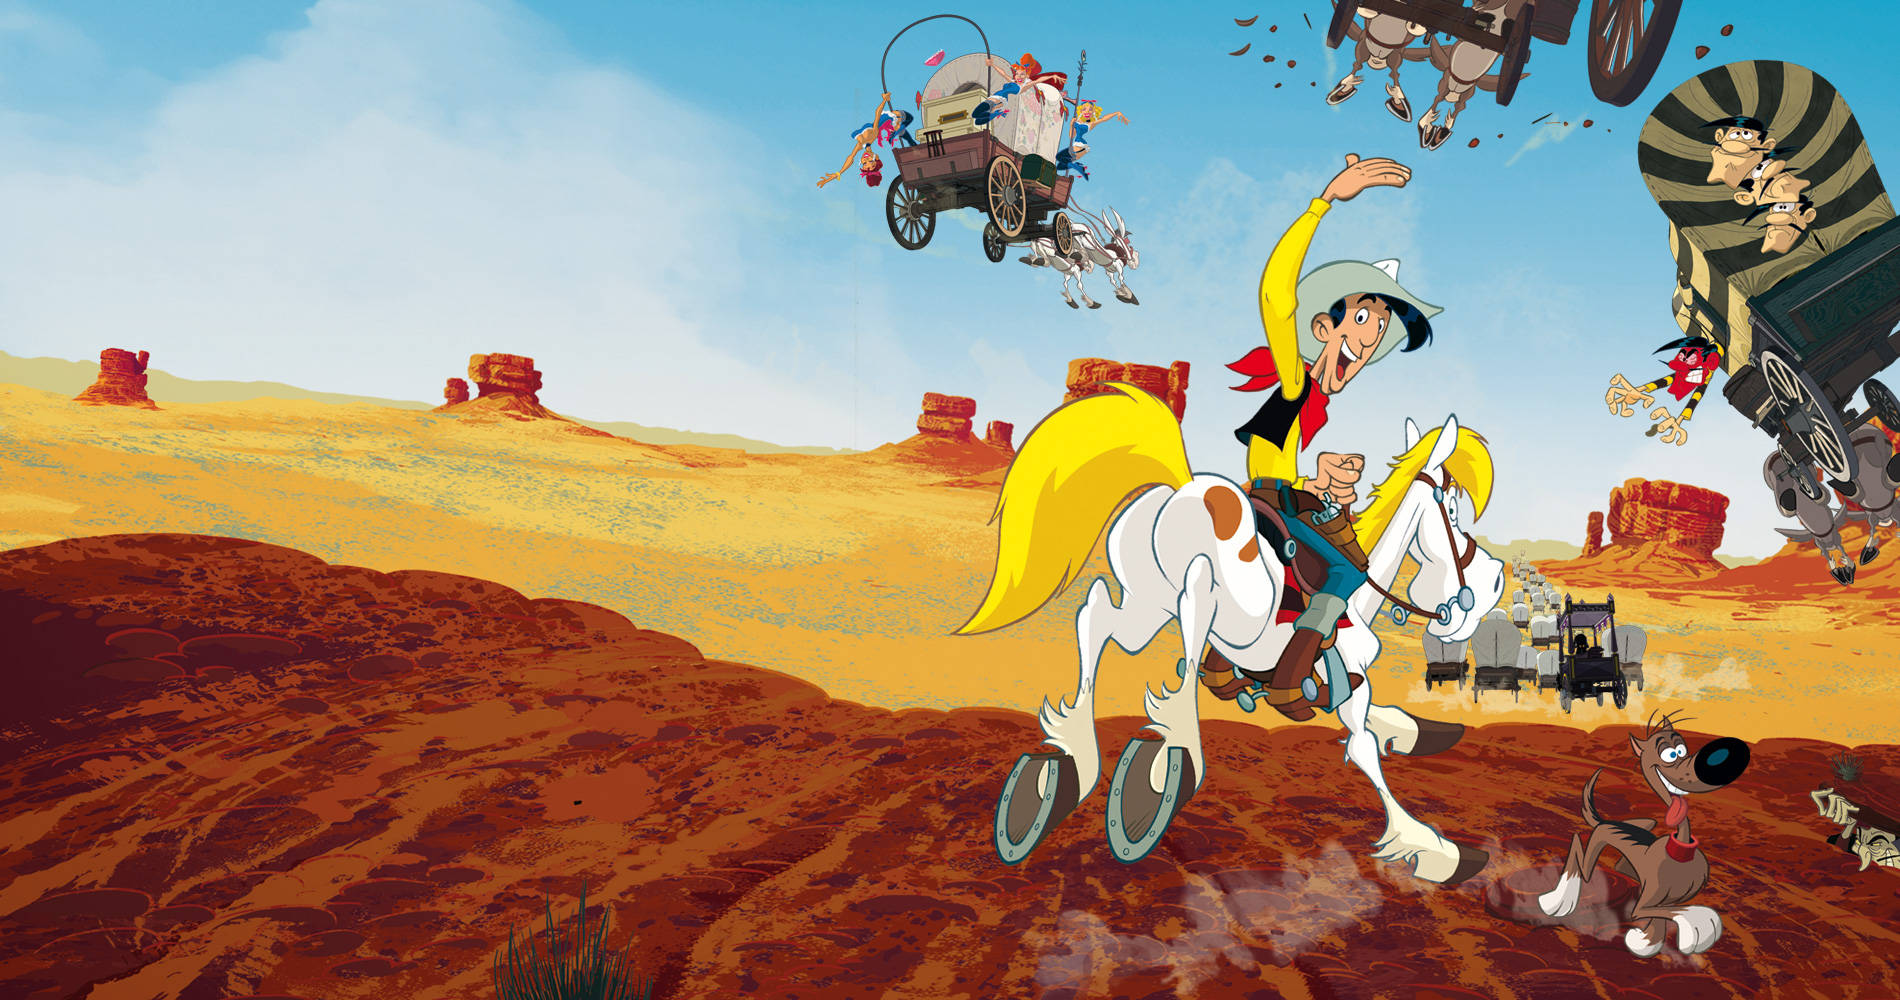 Go West A Lucky Luke Adventure Tous a l' Ouest Une aventure de Lucky Luke